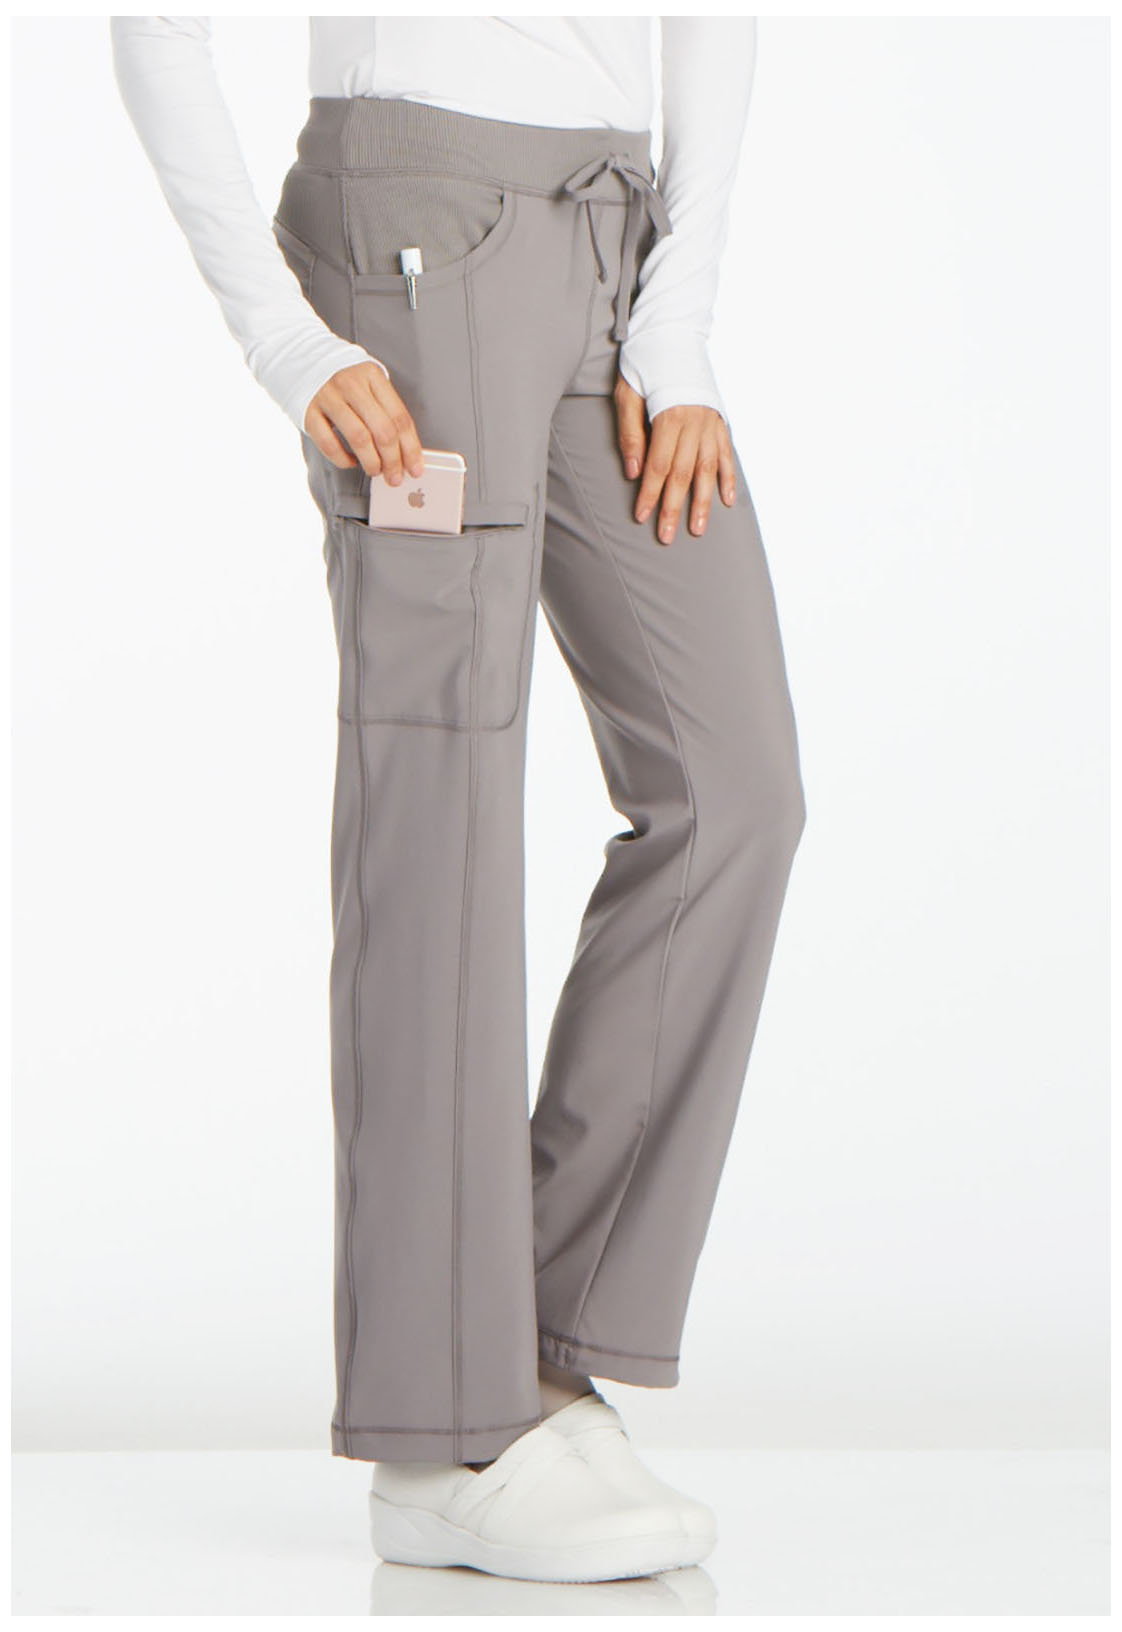 bf084cb4817 Infinity by Cherokee Women's Low Rise Straight Leg Drawstring Pant Gray